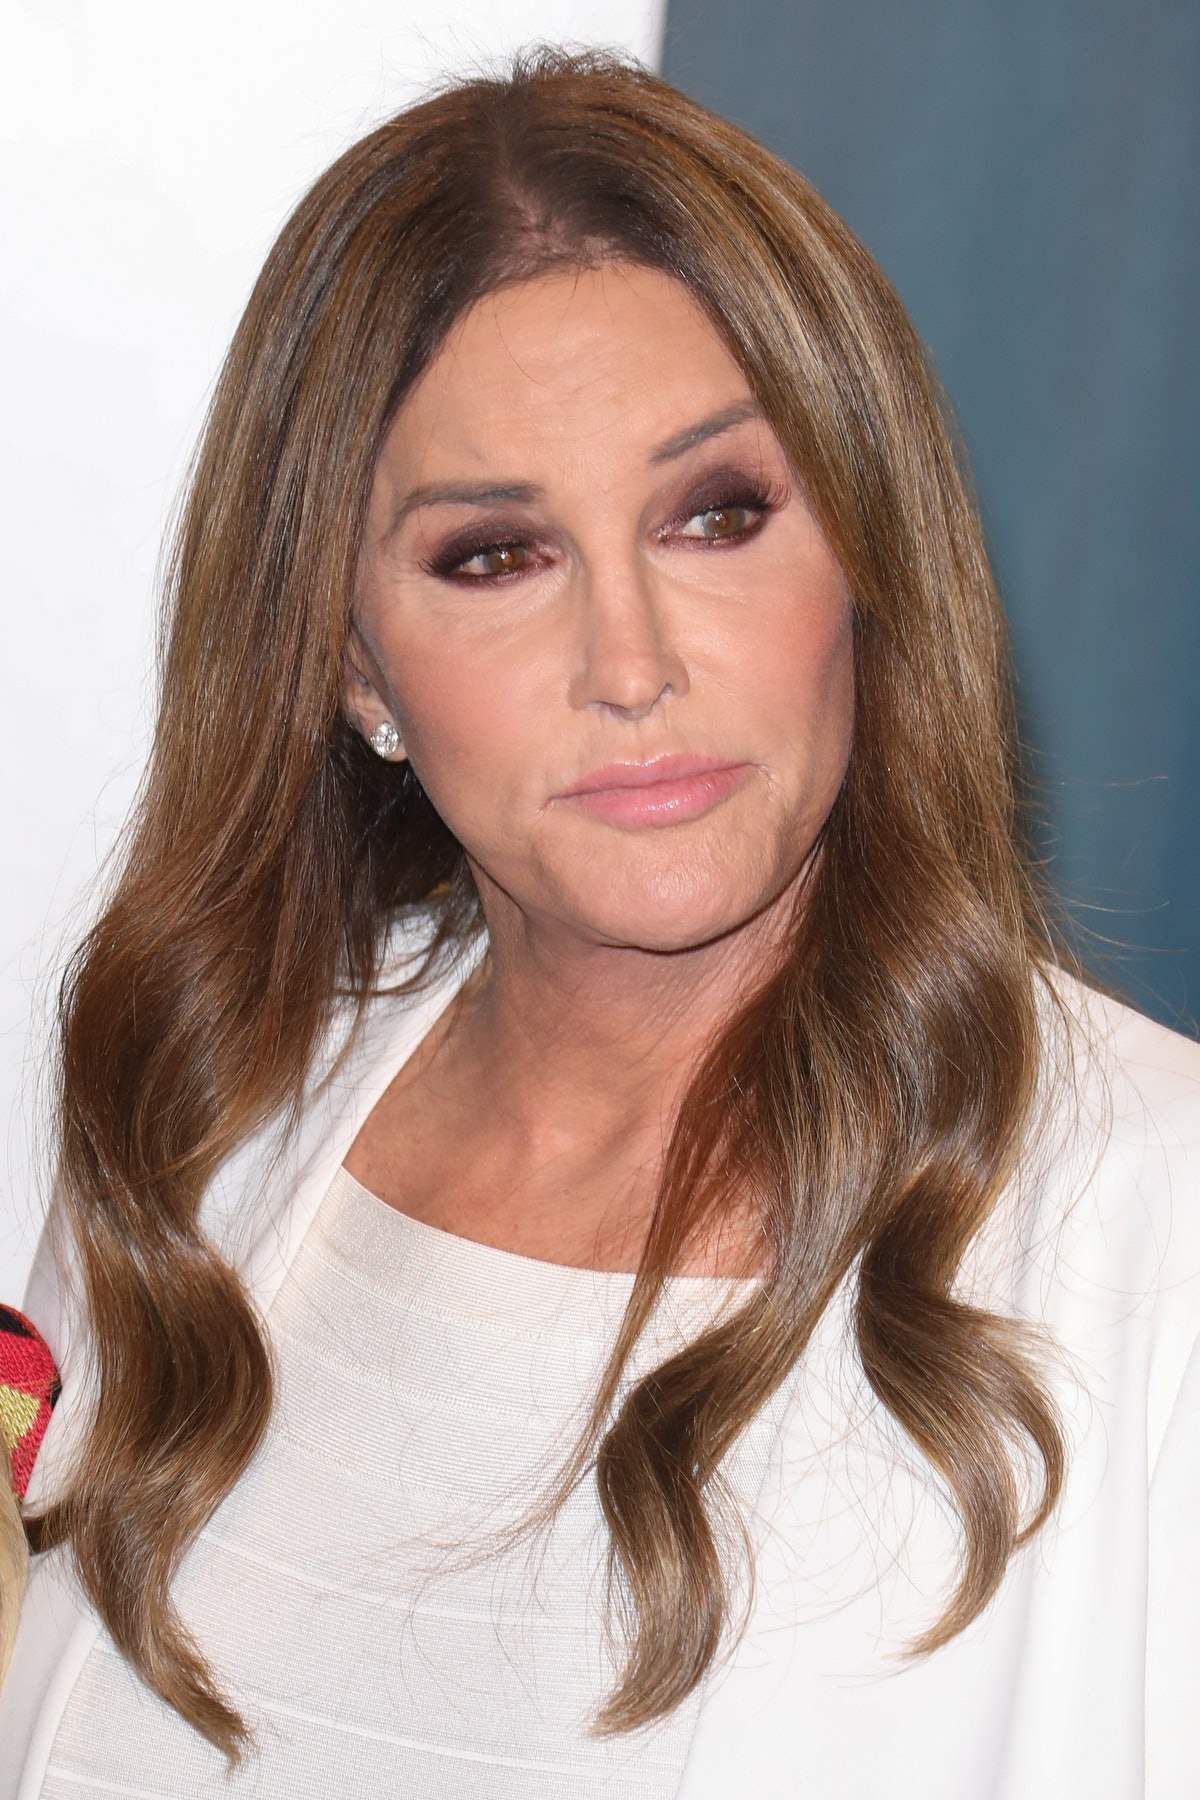 BEVERLY HILLS, CALIFORNIA - FEBRUARY 09: Caitlyn Jenner attends the 2020 Vanity Fair Oscar Party at Wallis Annenberg Center for the Performing Arts on February 09, 2020 in Beverly Hills, California. (Photo by Toni Anne Barson/WireImage)